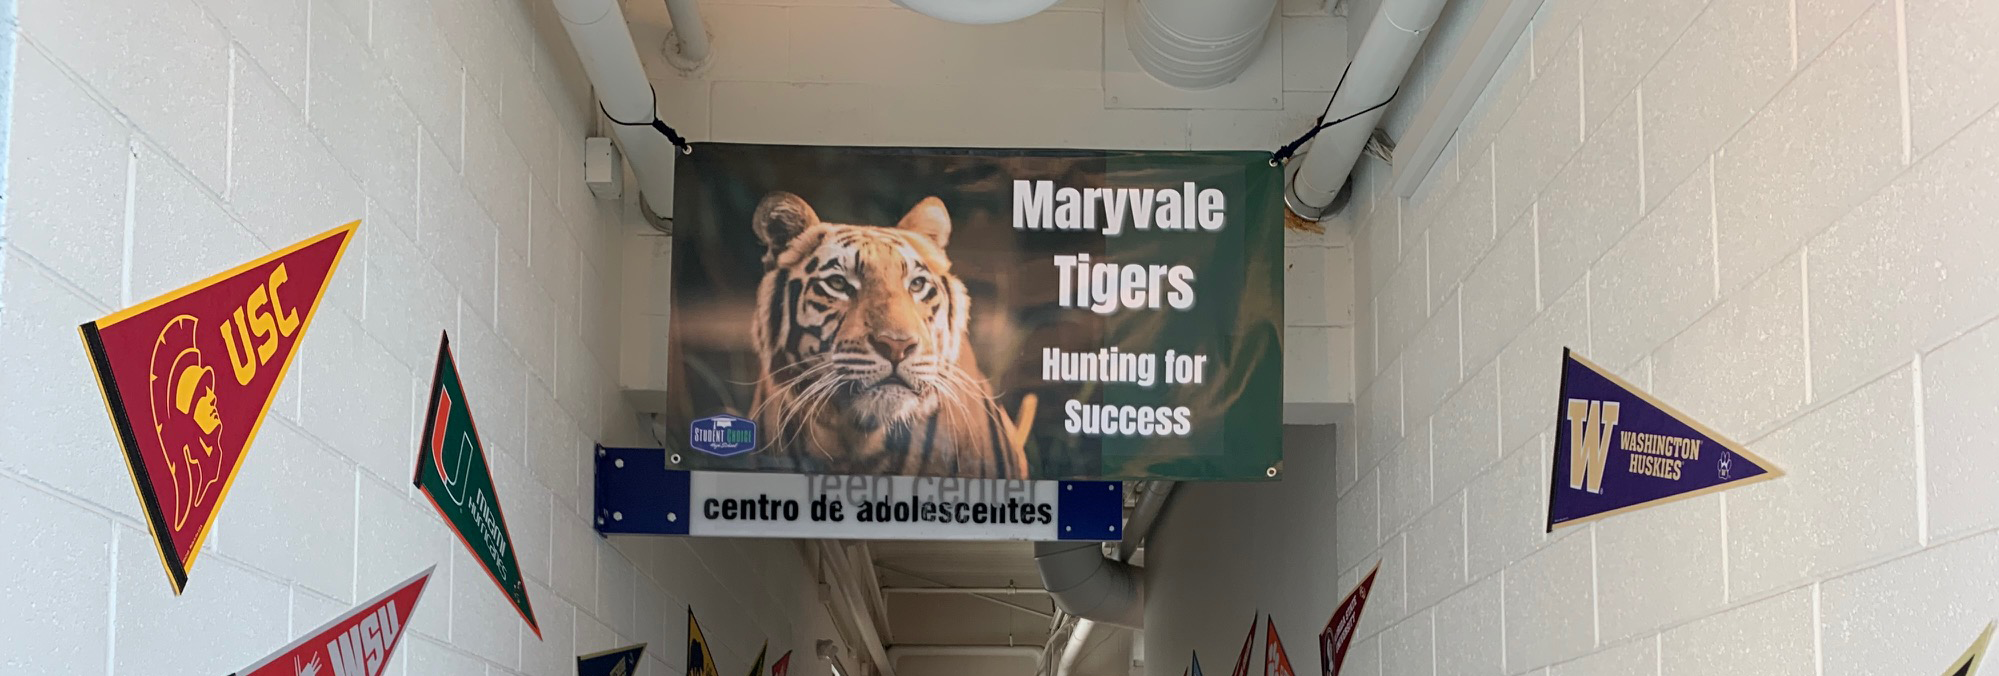 Maryvale Tigers - Hunting for Success